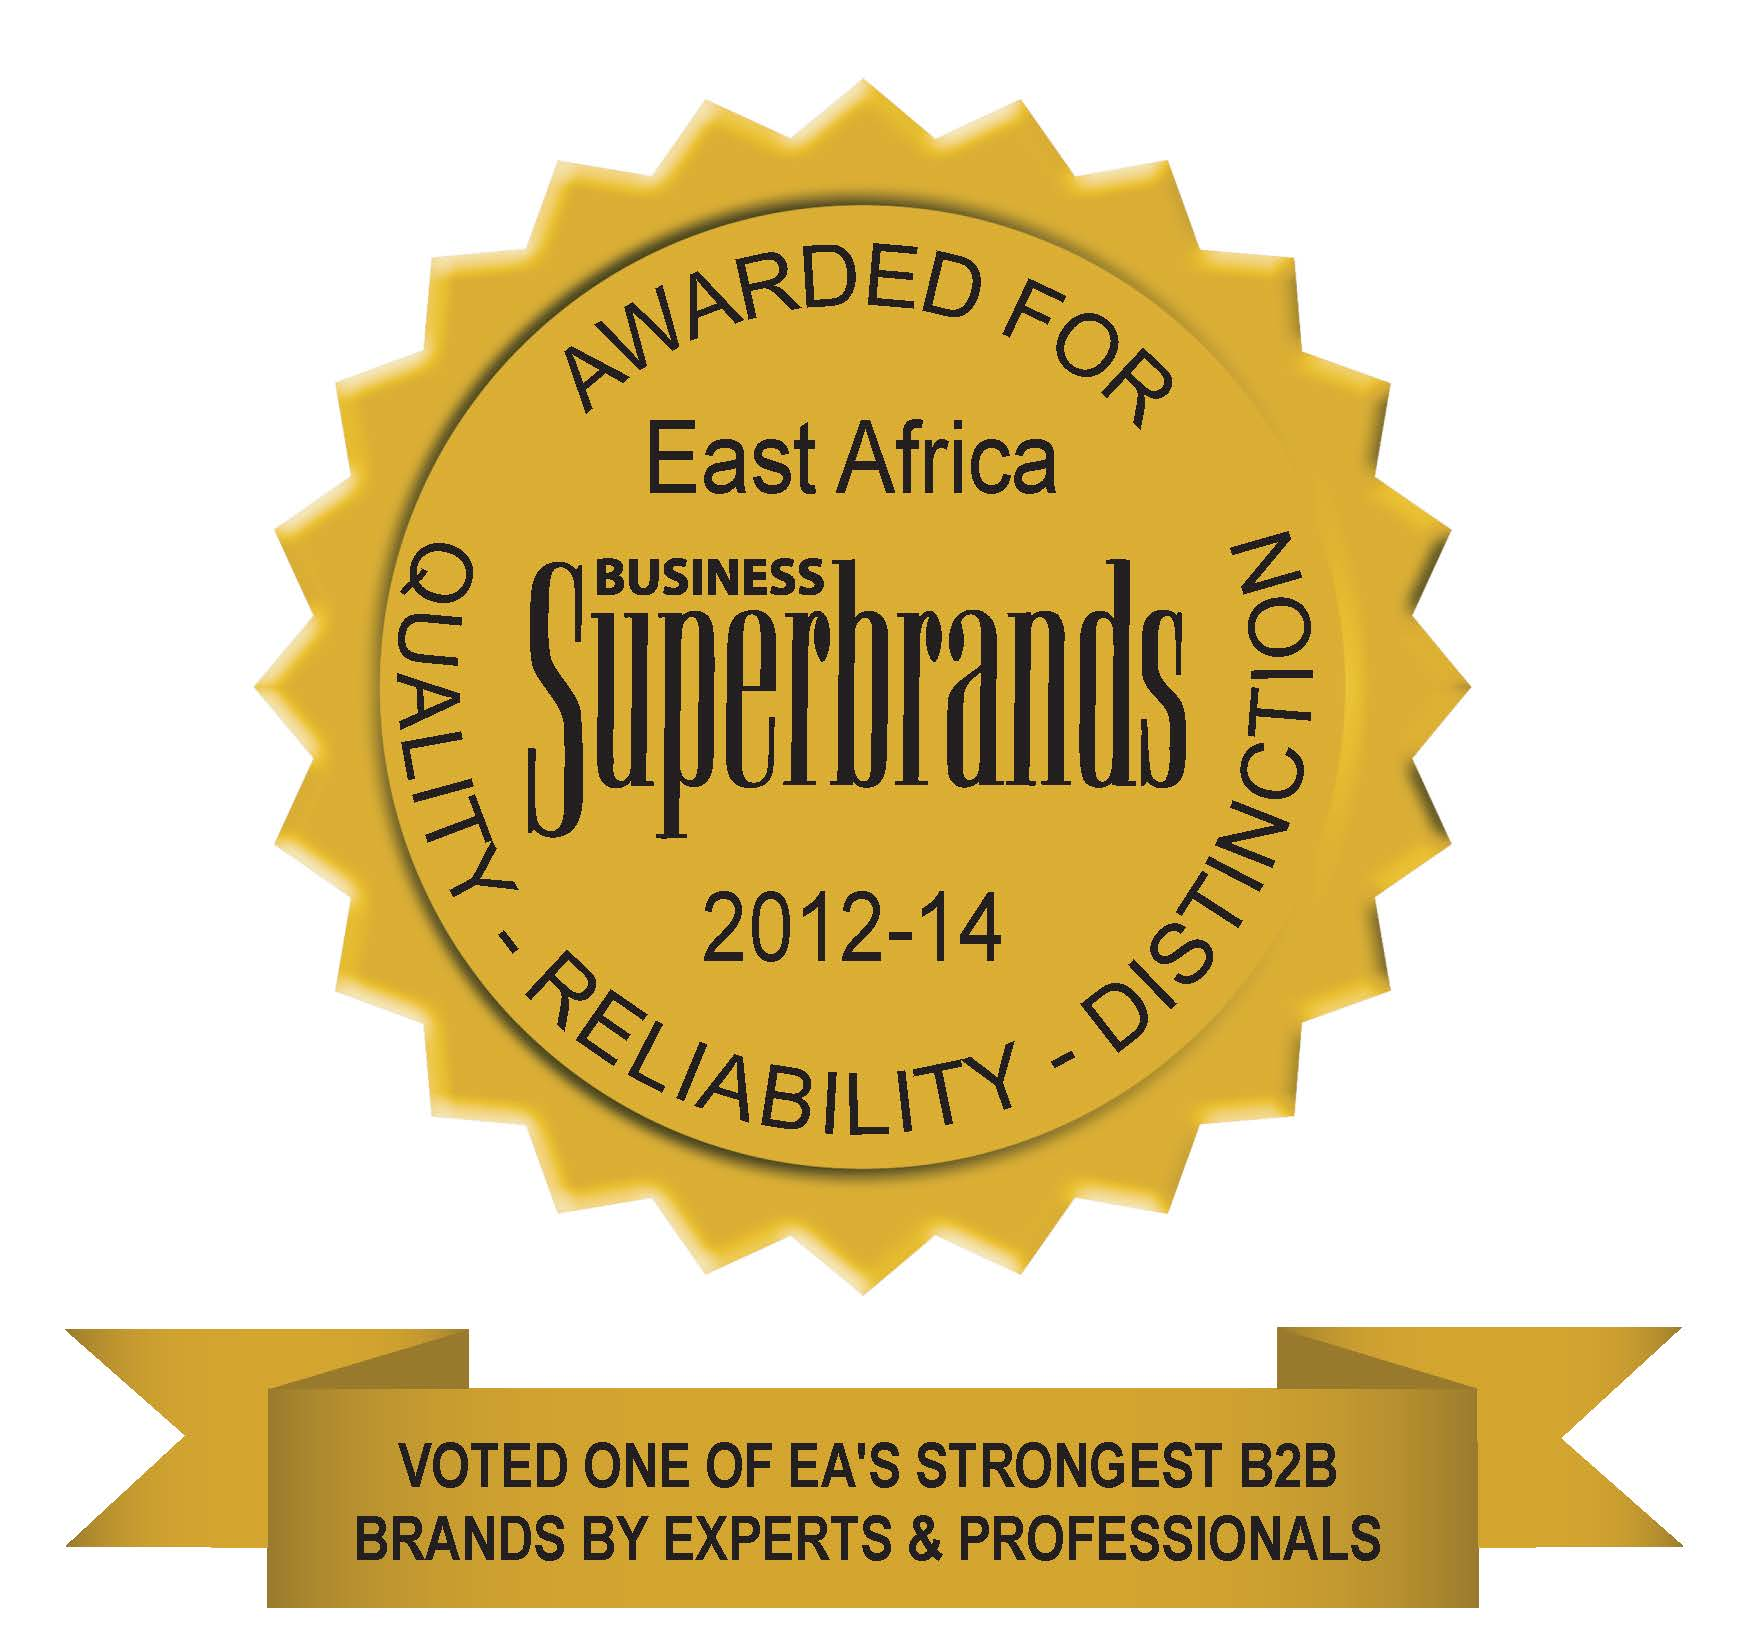 EAC Superbrands 2012-2014 Certificate